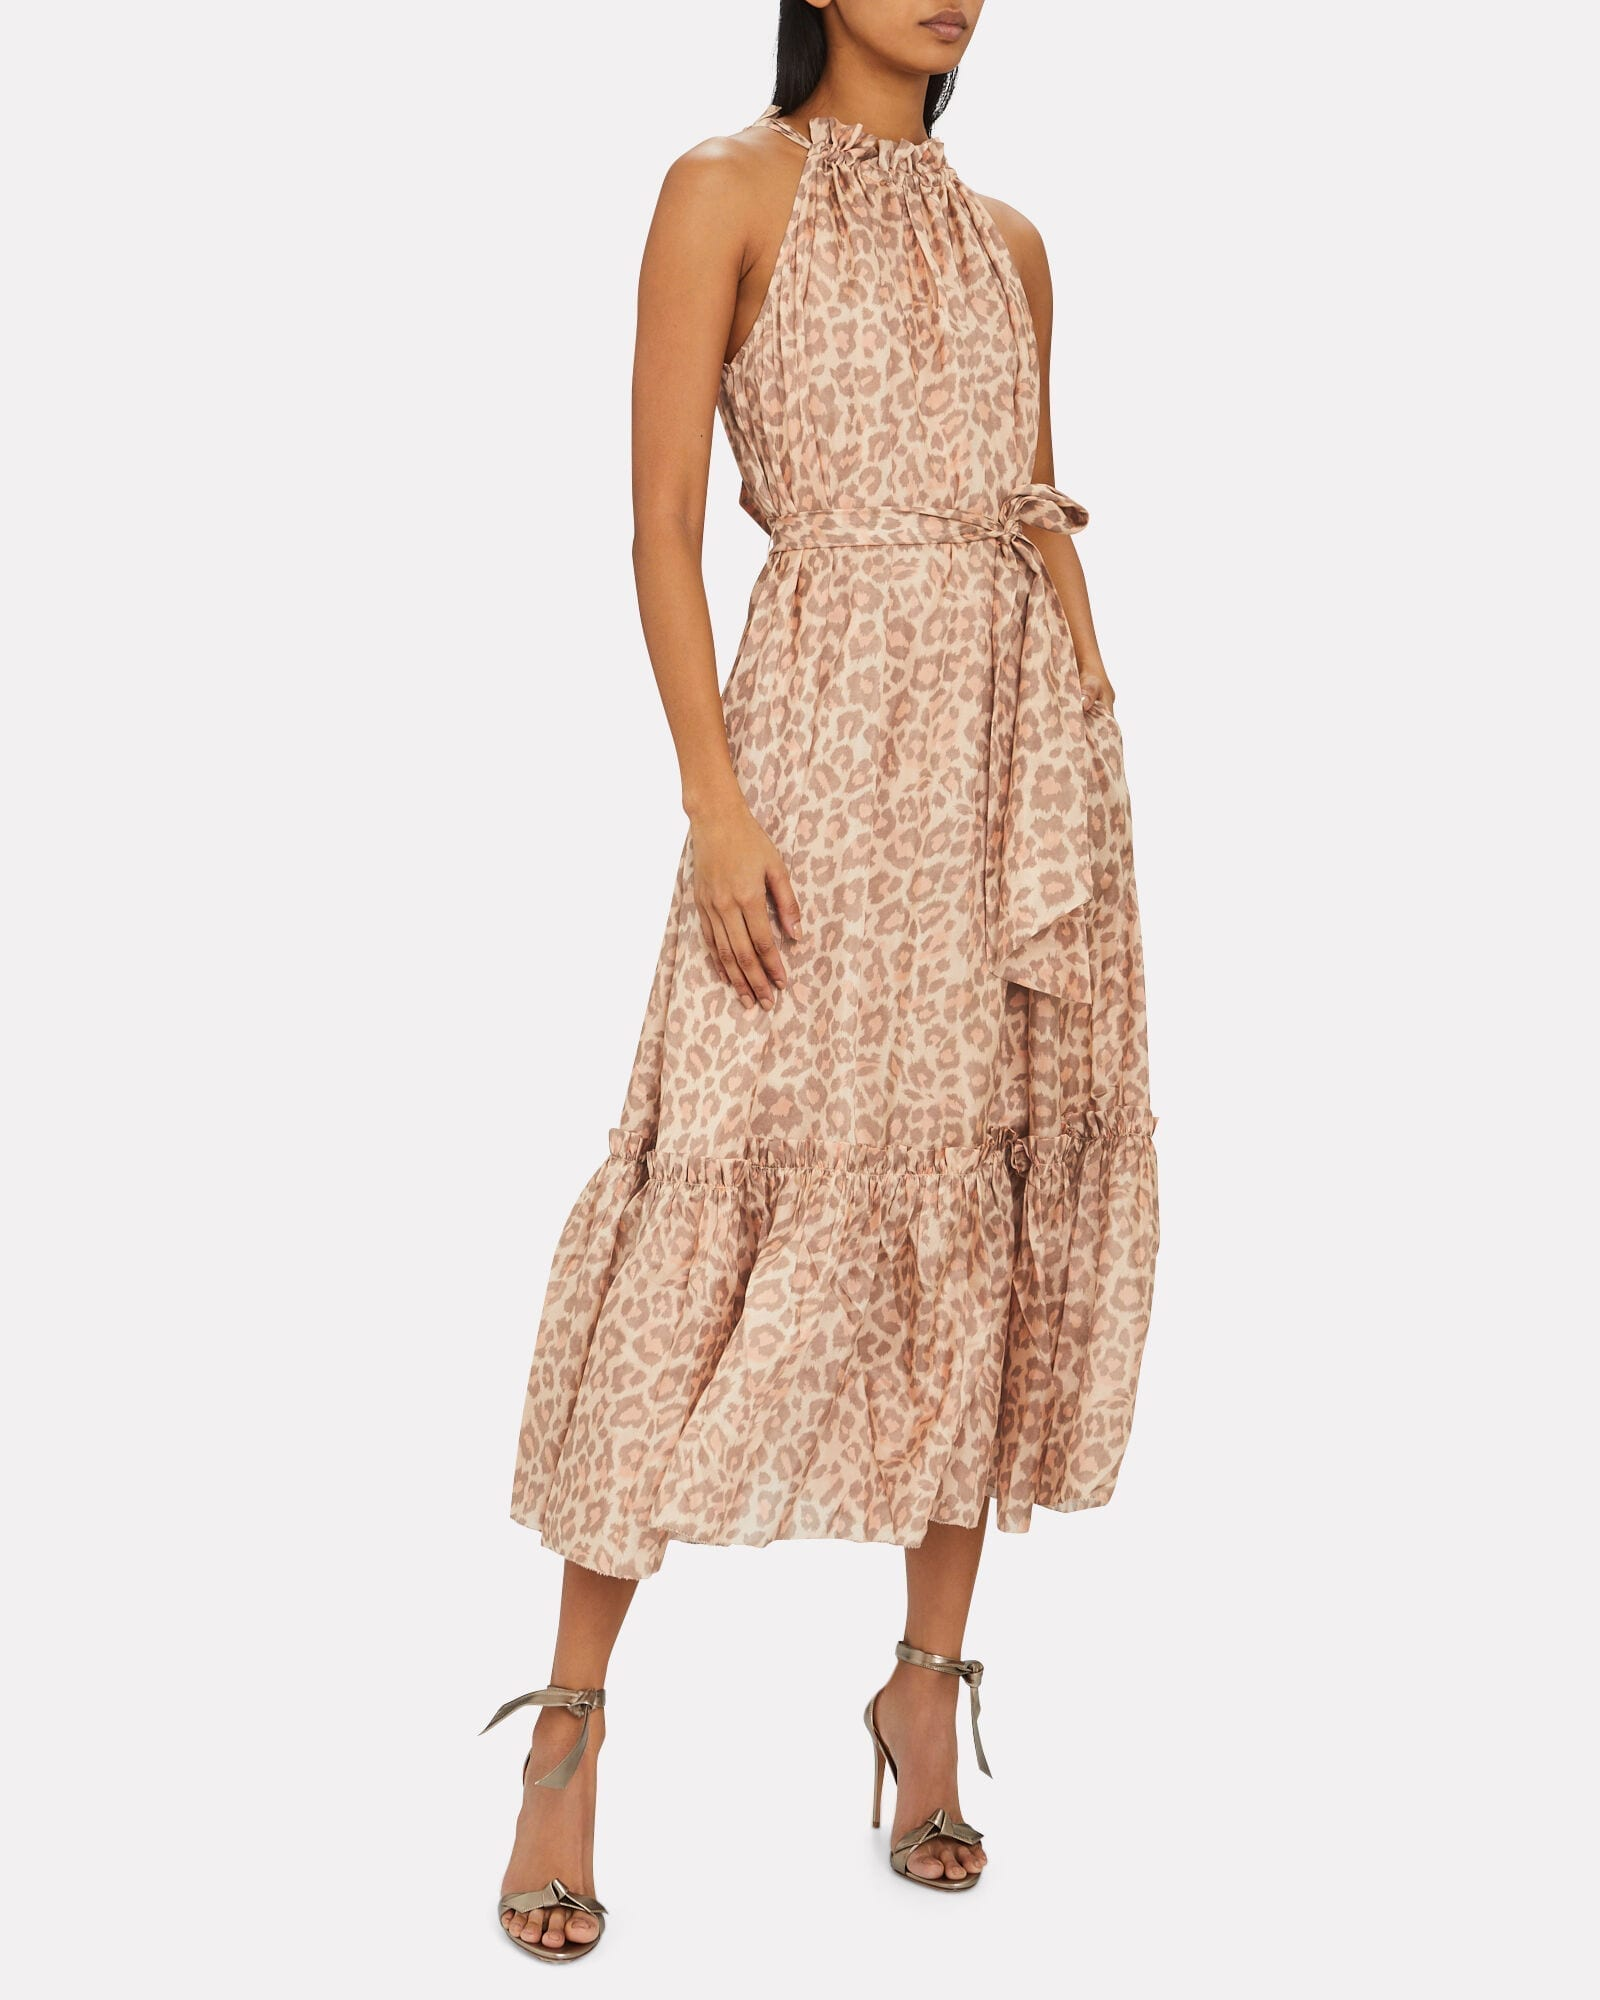 ZIMMERMANN Kirra Leopard Silk Chiffon Dress